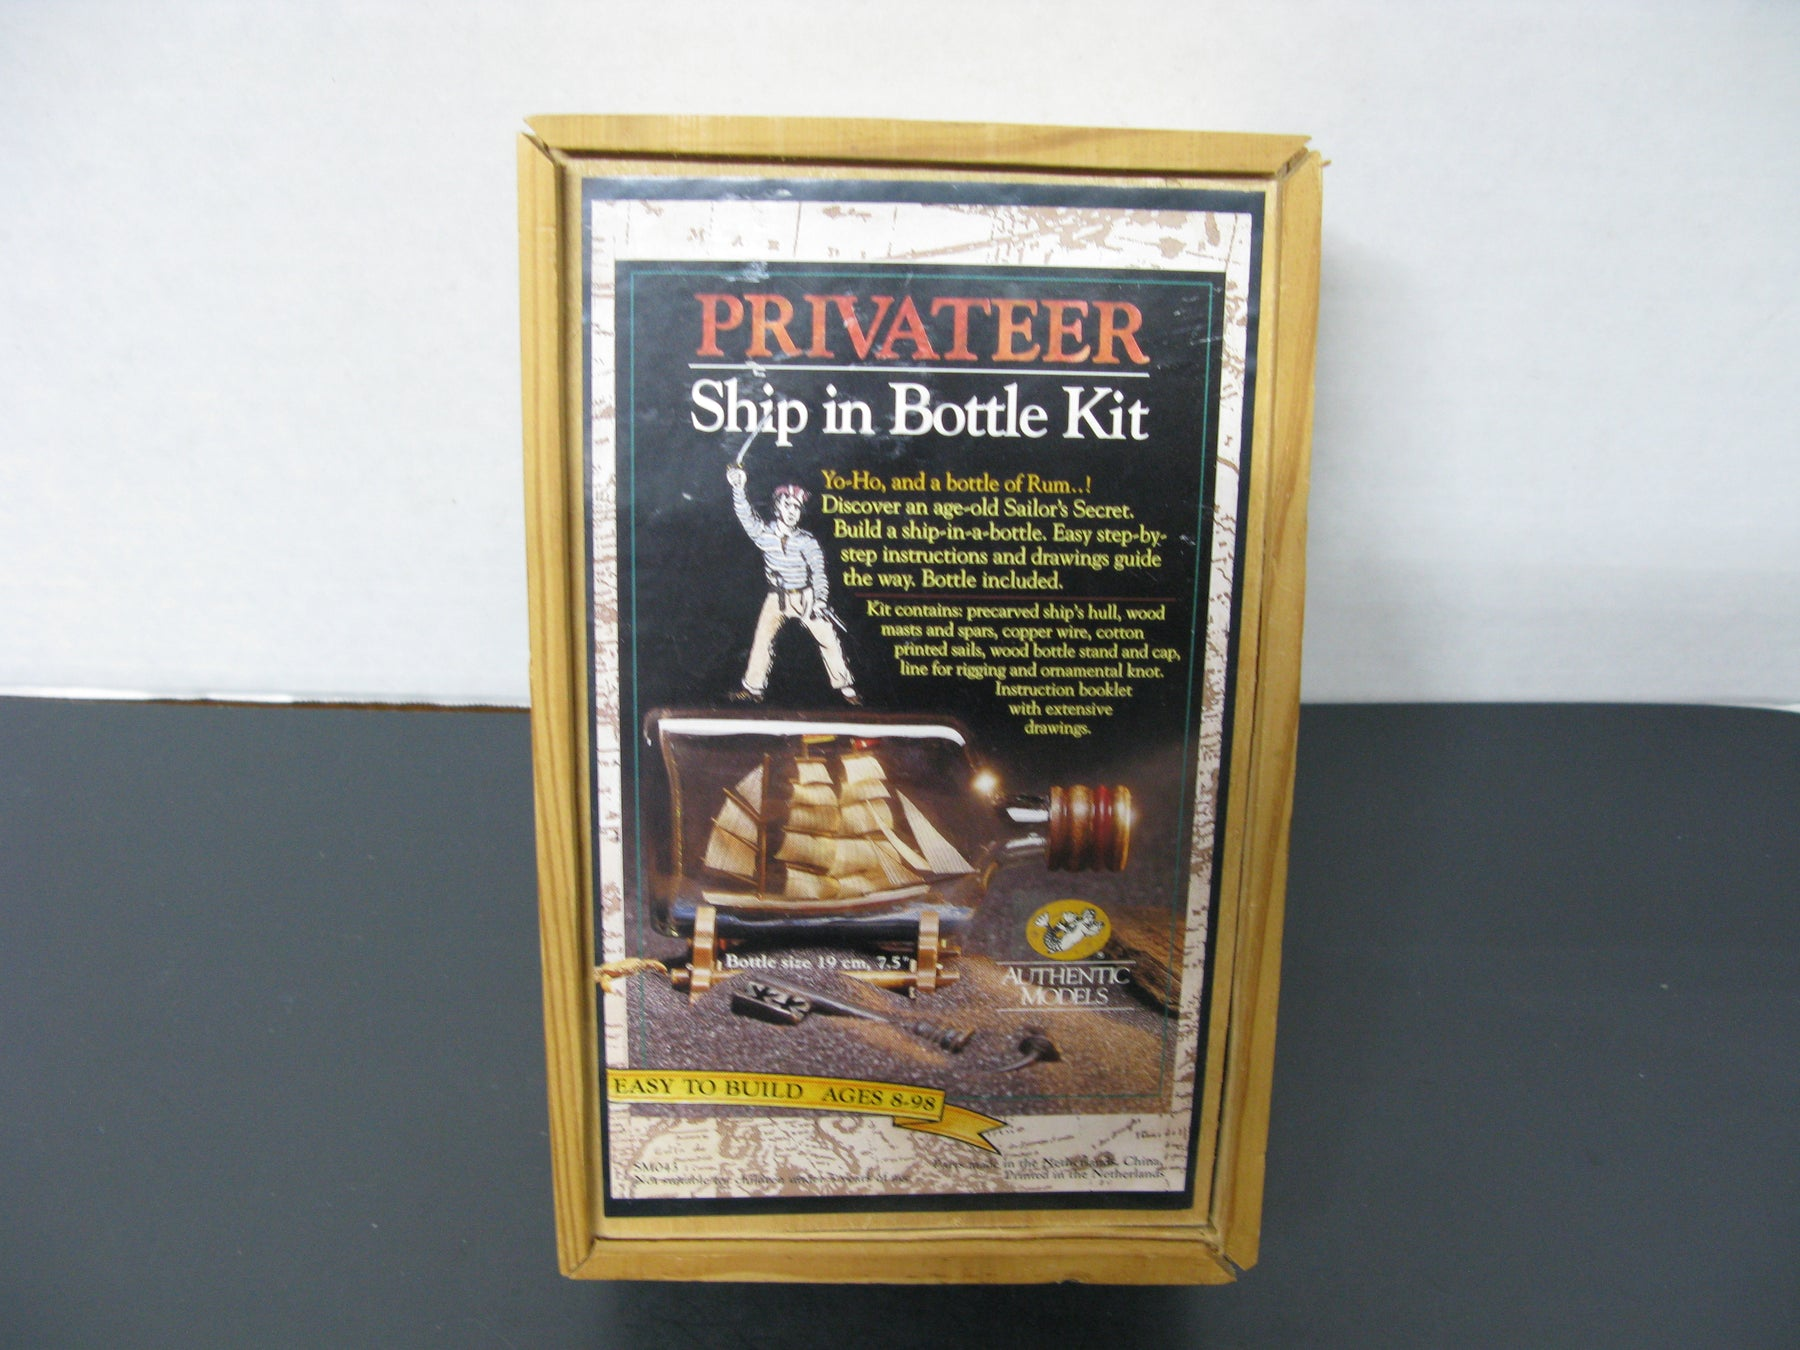 Privateer Ship in Bottle Kit